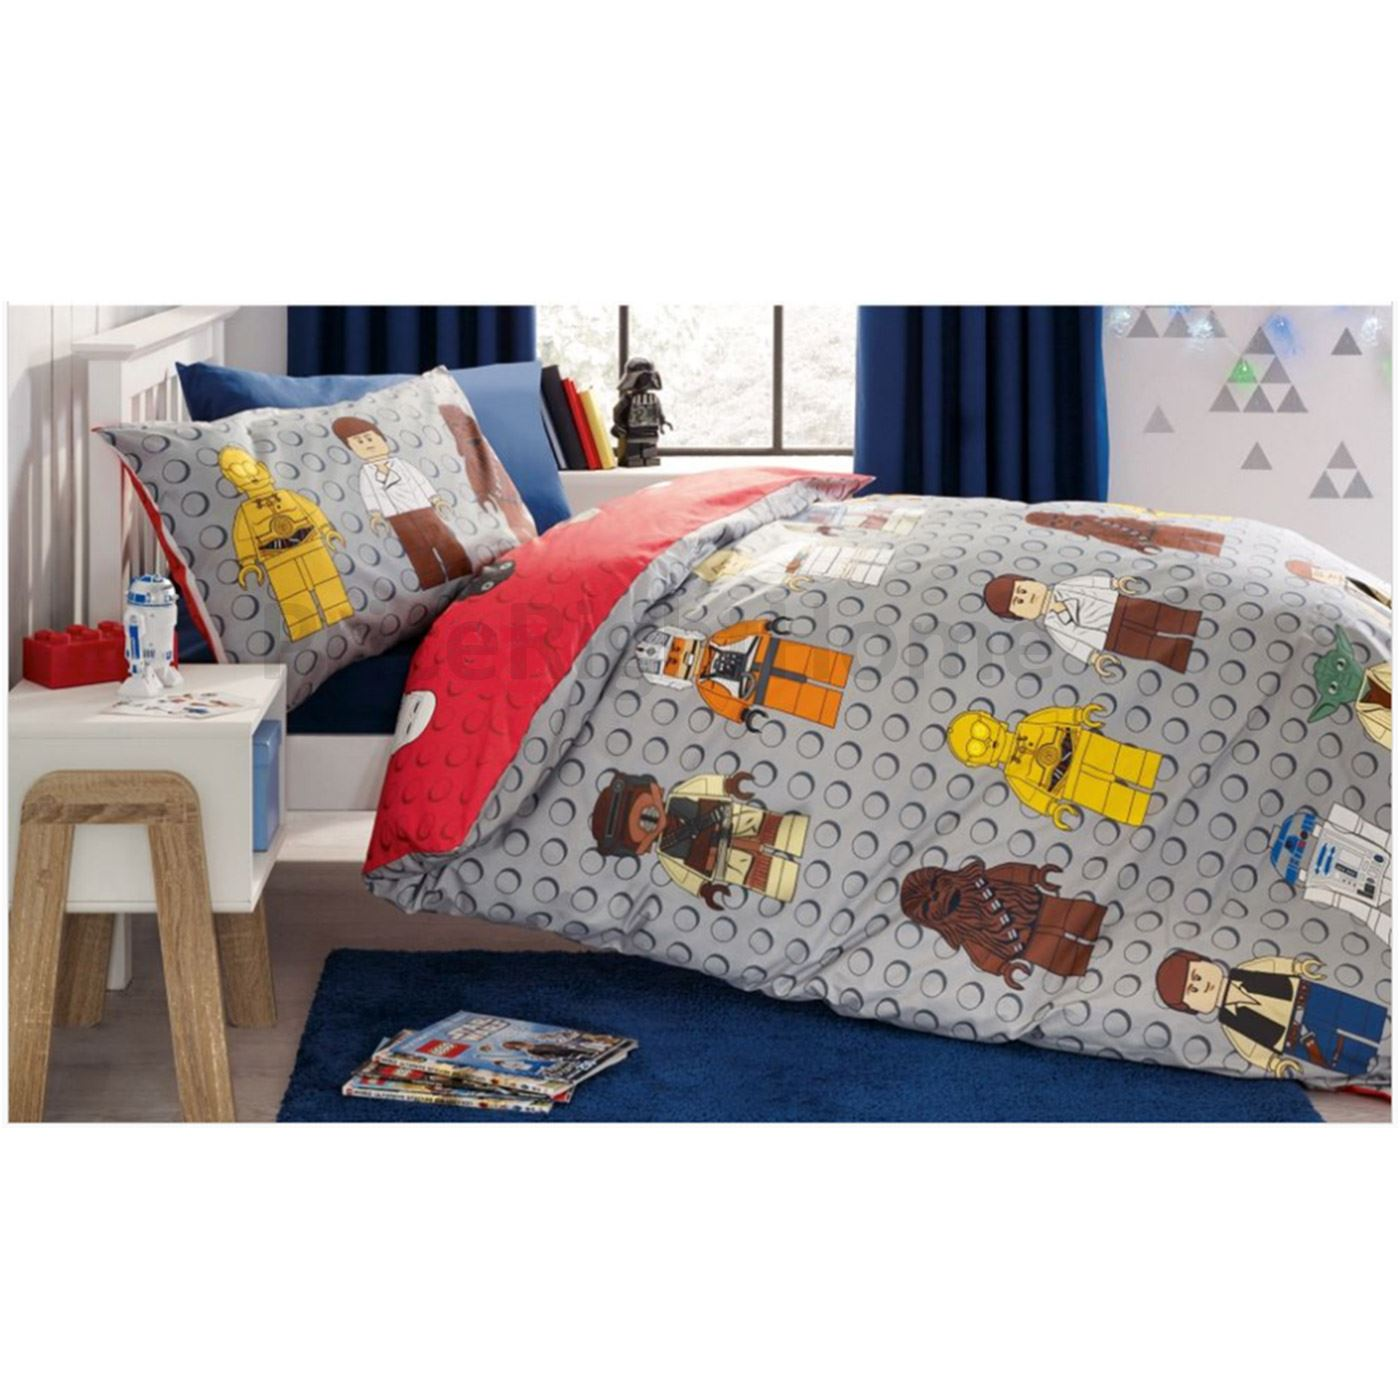 Lego Throw Pillow And Blanket Set : OFFICIAL LEGO SINGLE DUVET COVERS NEW ? NINJAGO, MOVIE, CITY, SUPERHEROES eBay